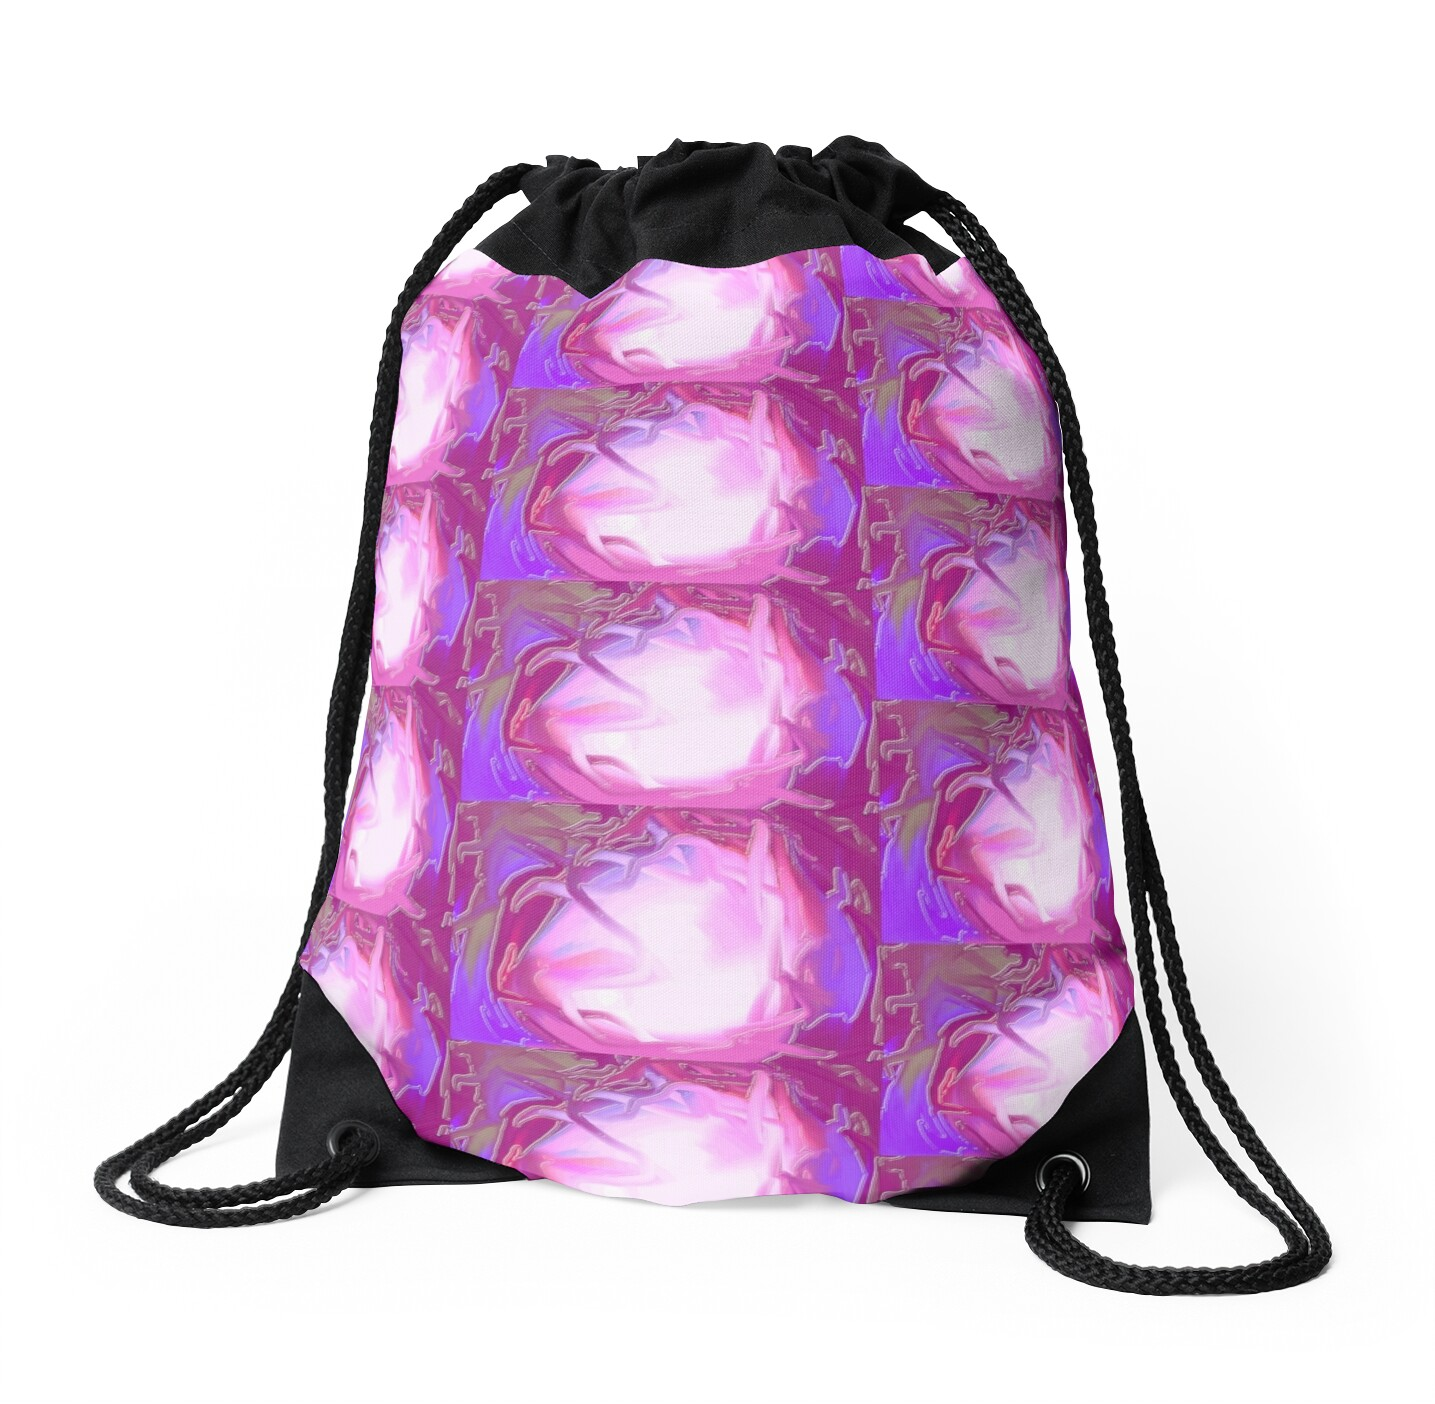 Wall Stickers Perth Quot Purple Swirl Quot Drawstring Bags By Sheree Barber Redbubble